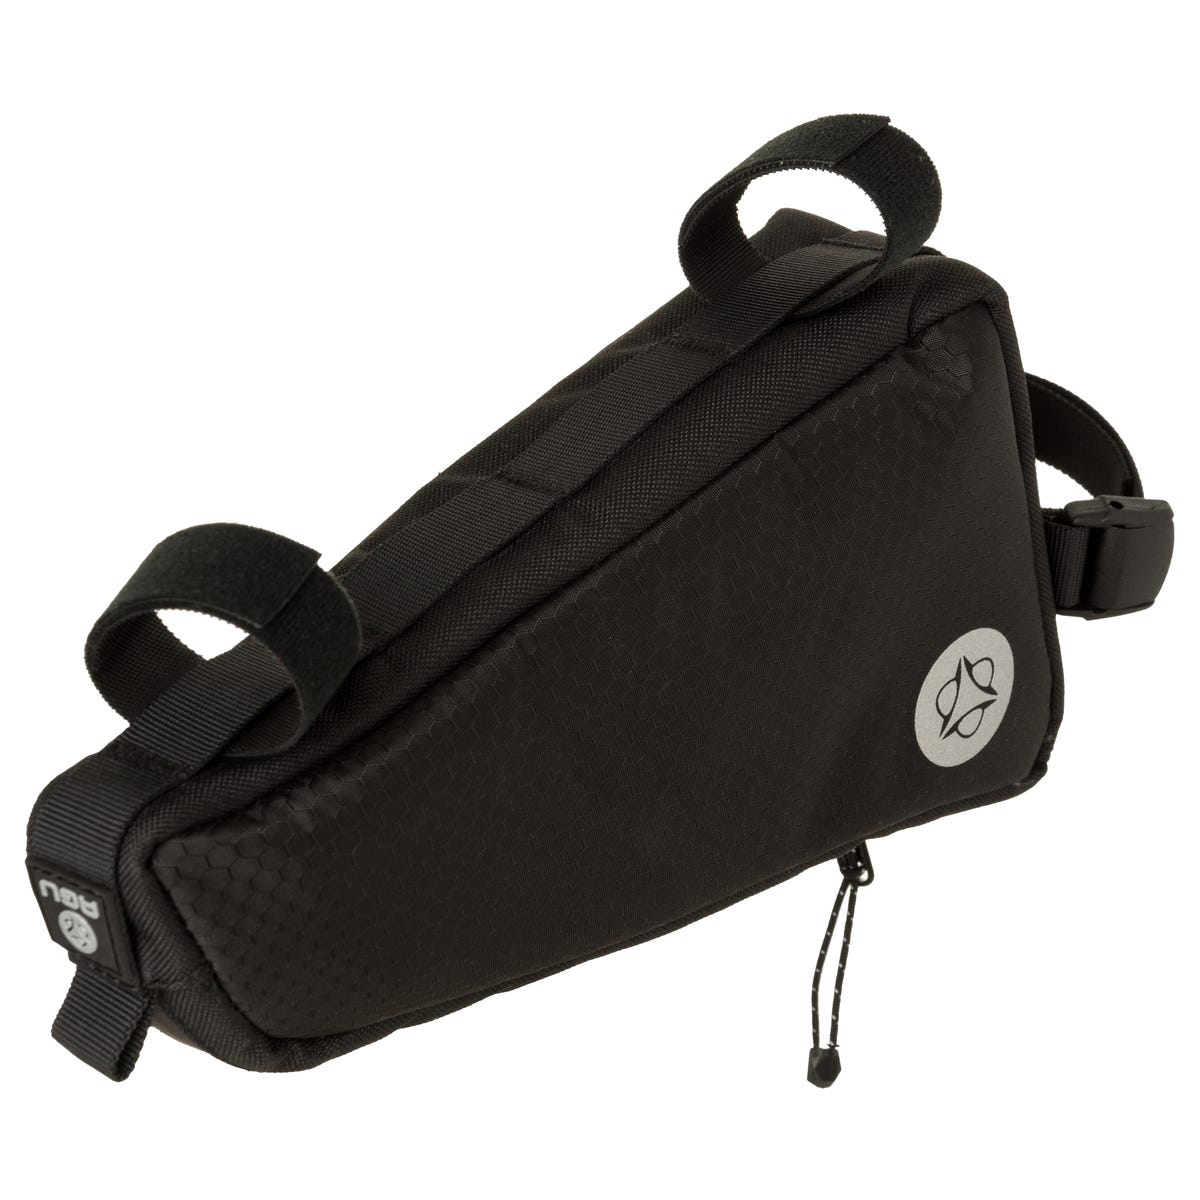 Top-Tube Bag Venture